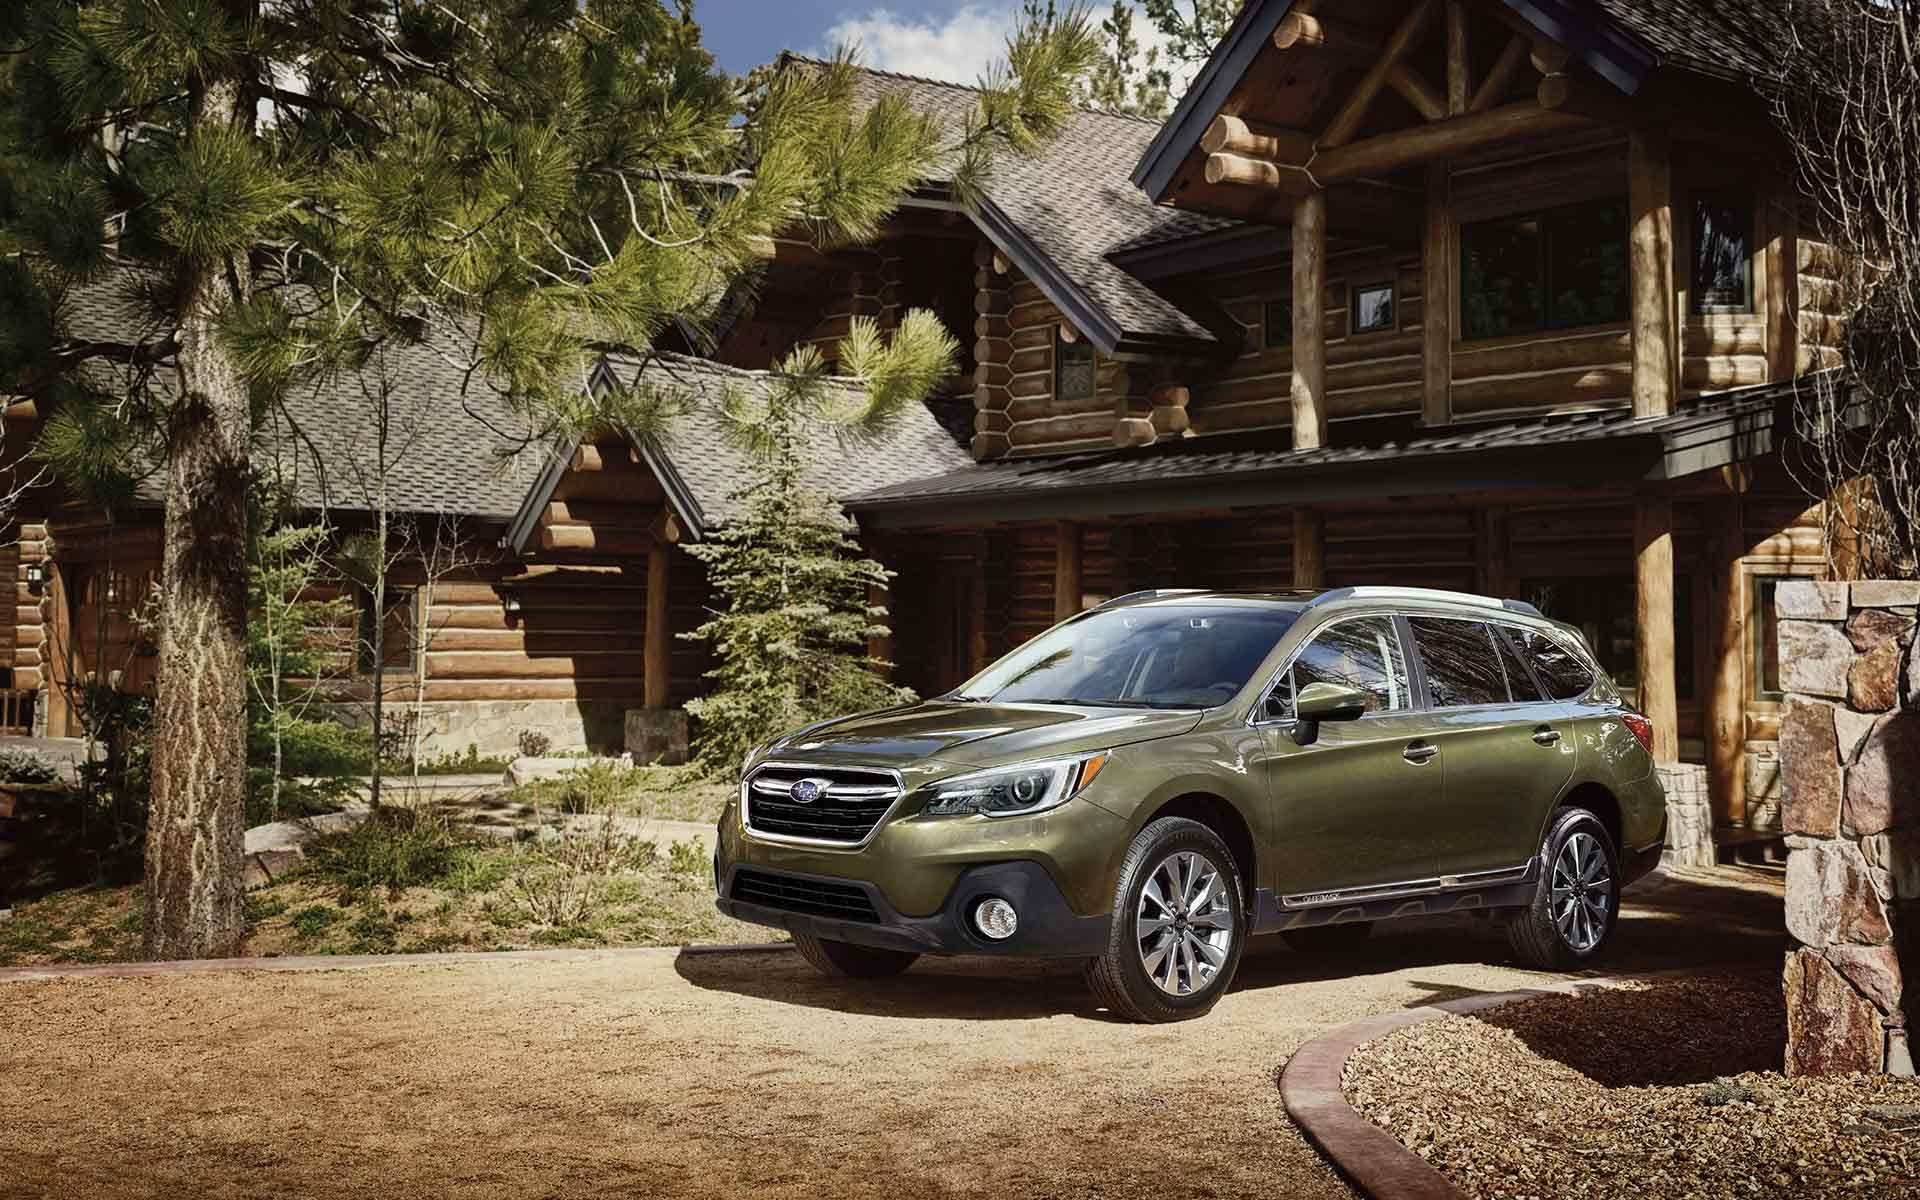 2019 Subaru Outback For Sale In Catskill Ny Rc Lacy 2000 Spark Plug